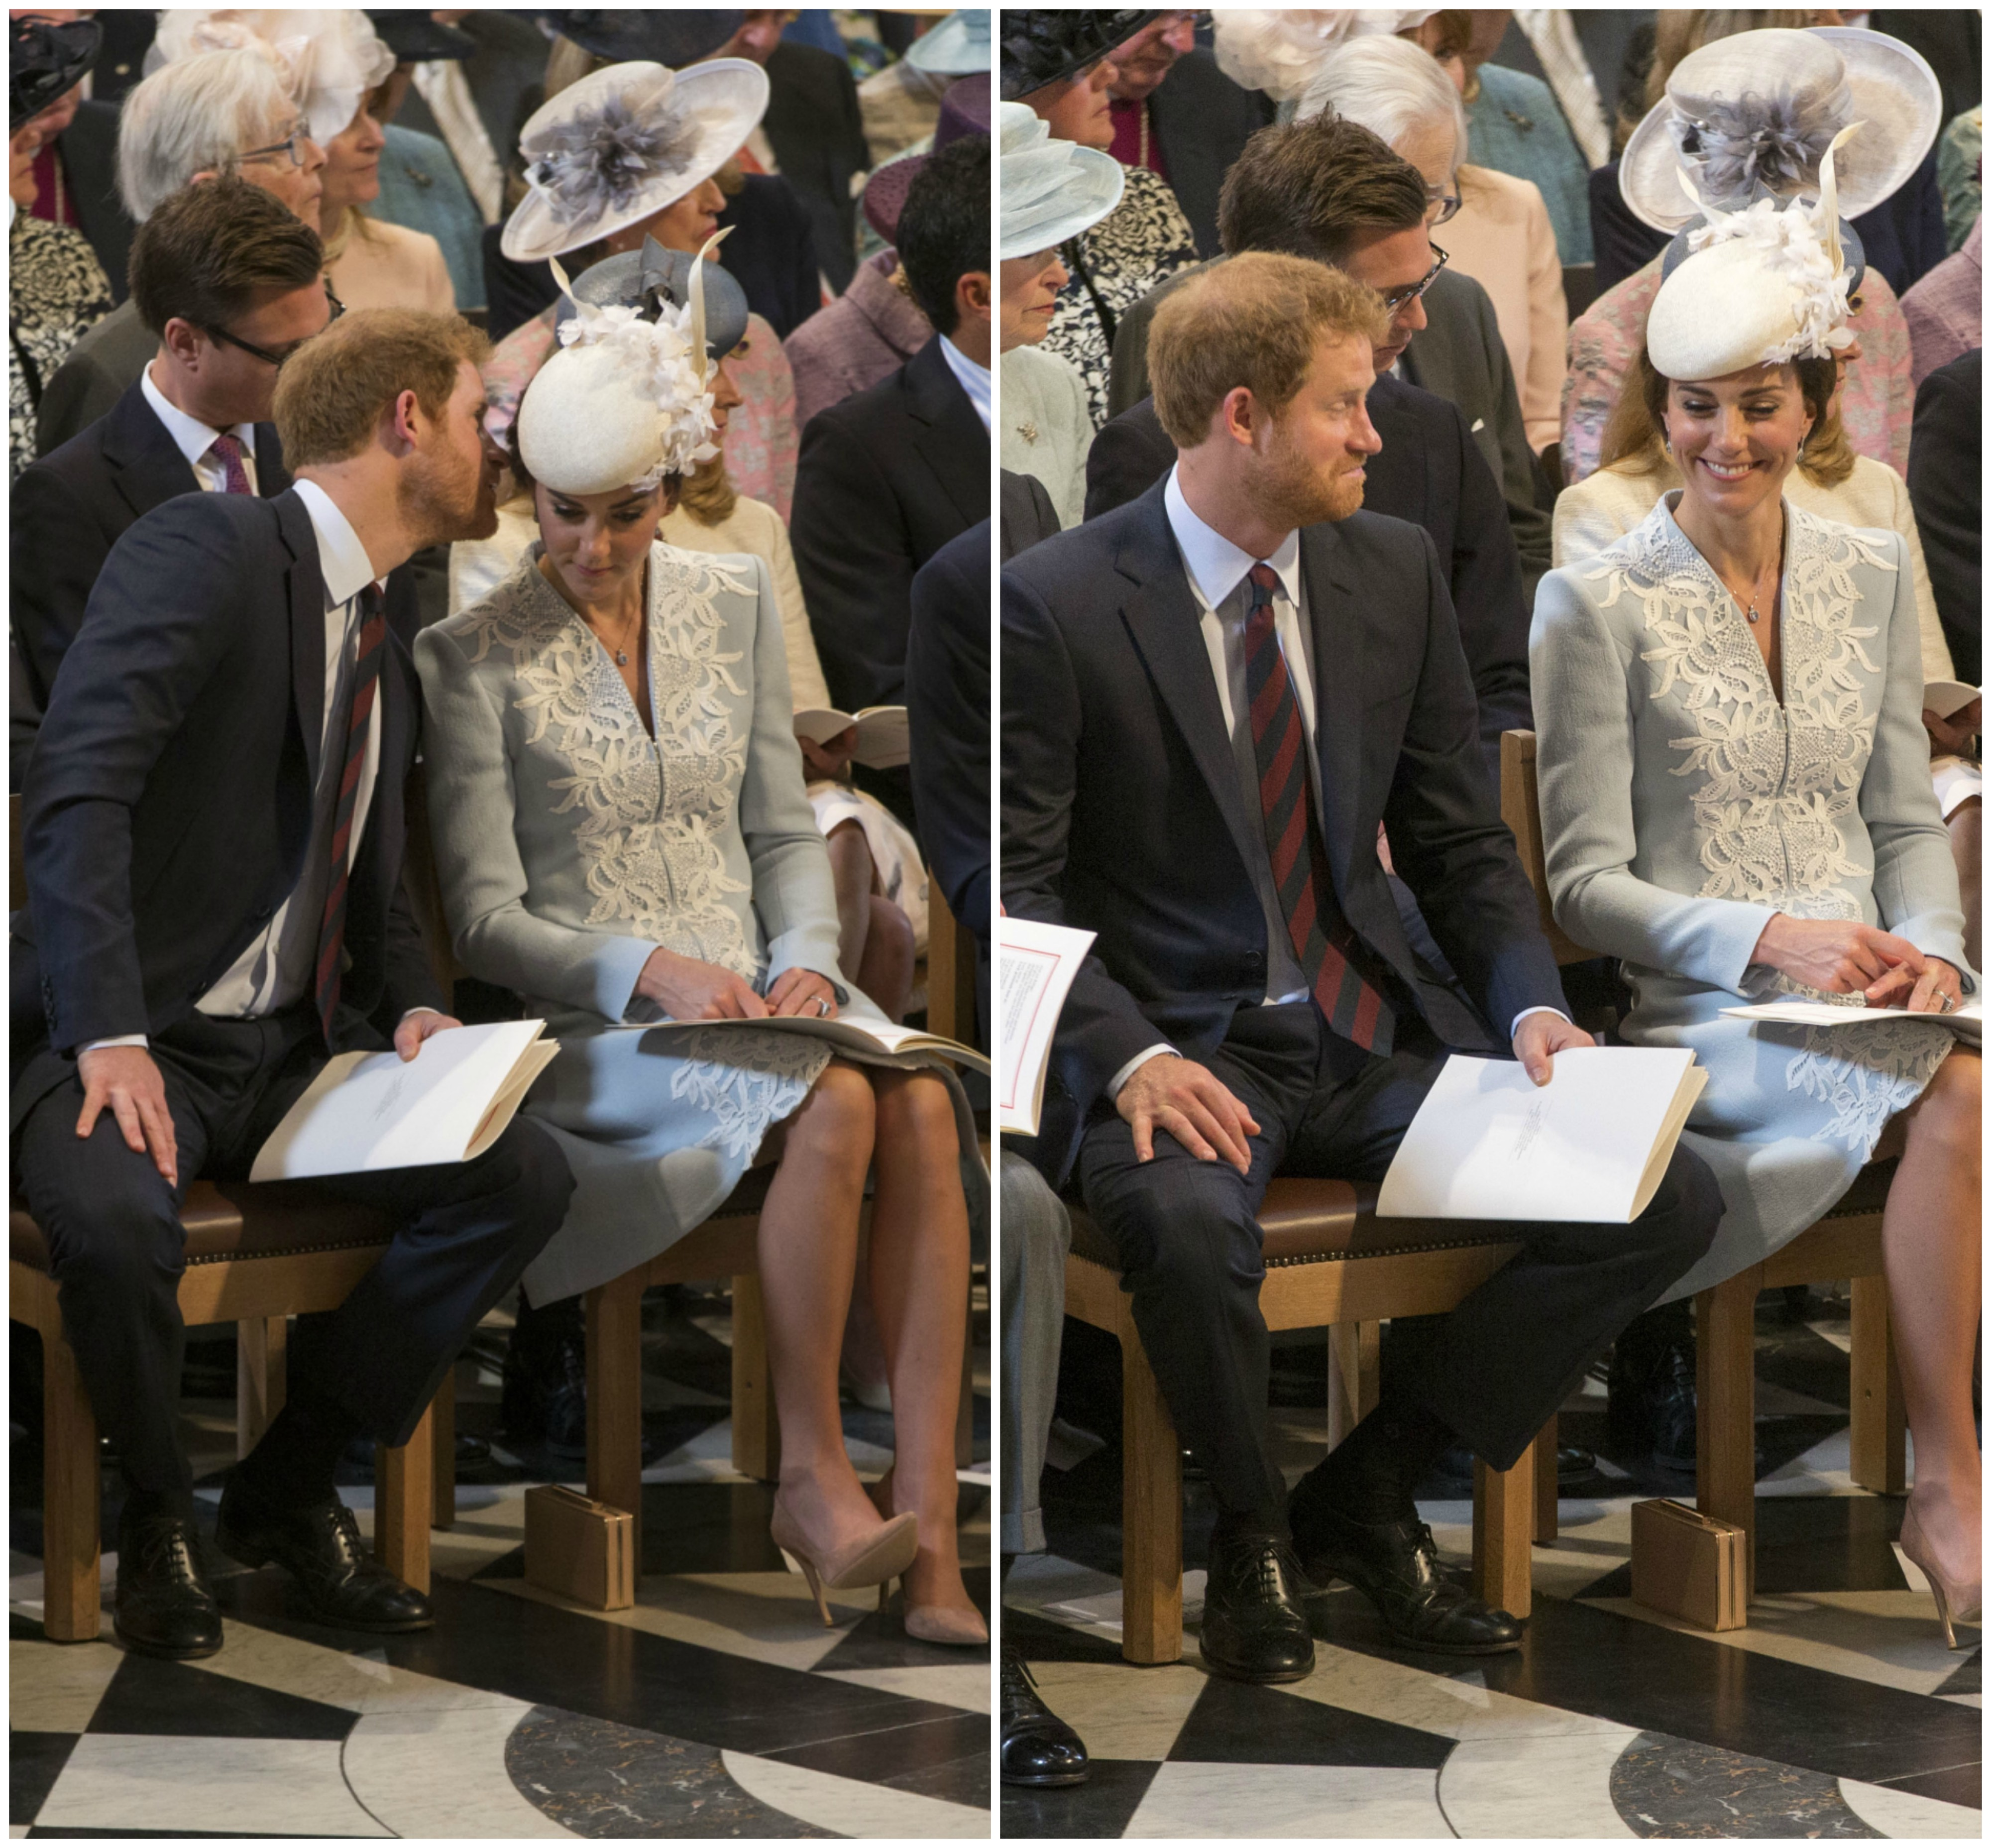 Prince Harry Duchess of Cambridge giggle st paul's cathedral queen 90th birthday